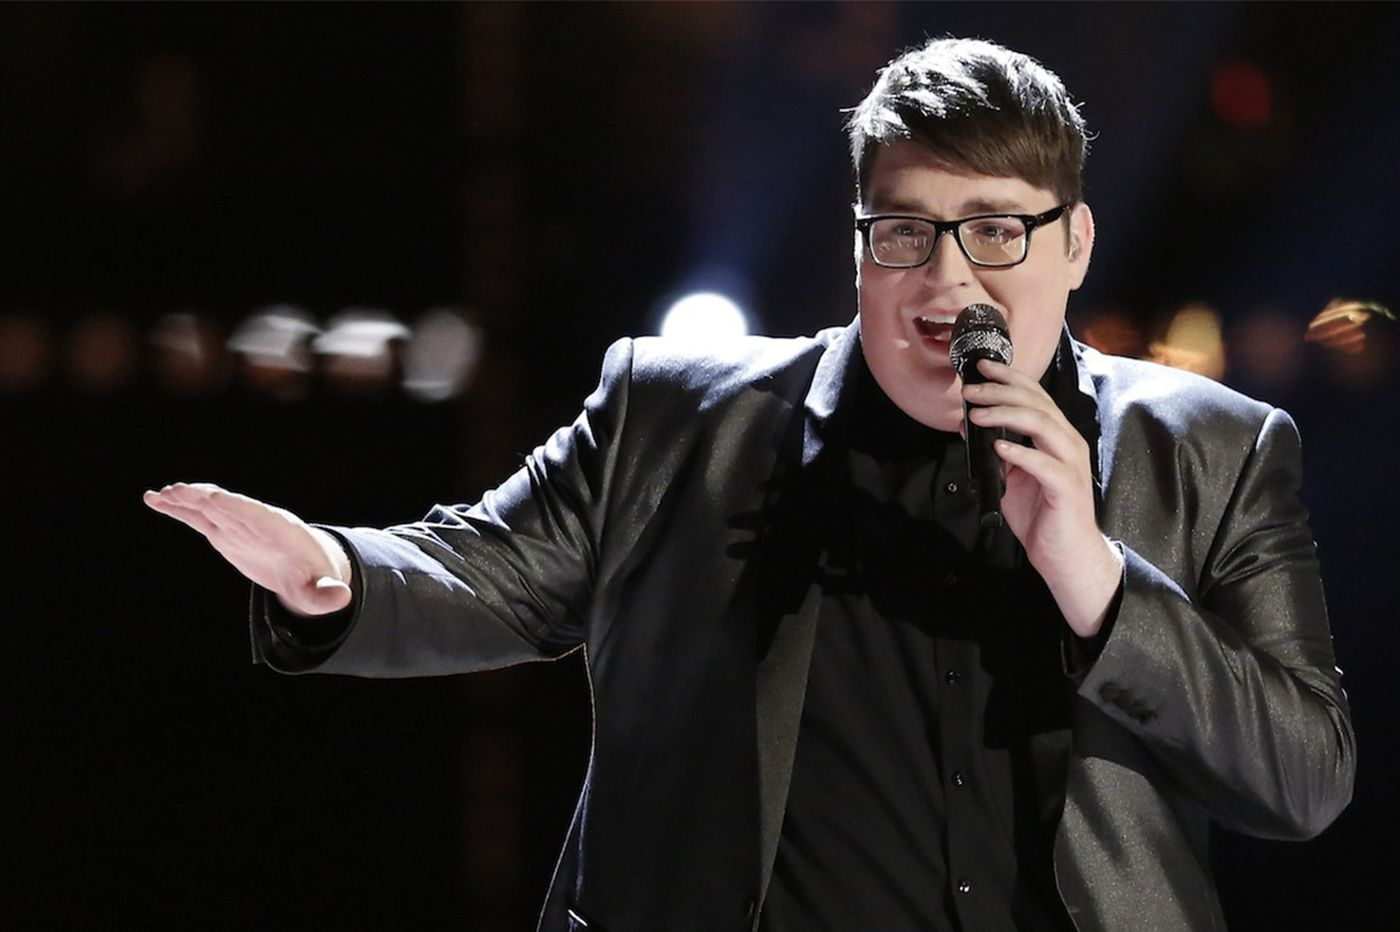 Sideshow: Jordan Smith wins 'The Voice'